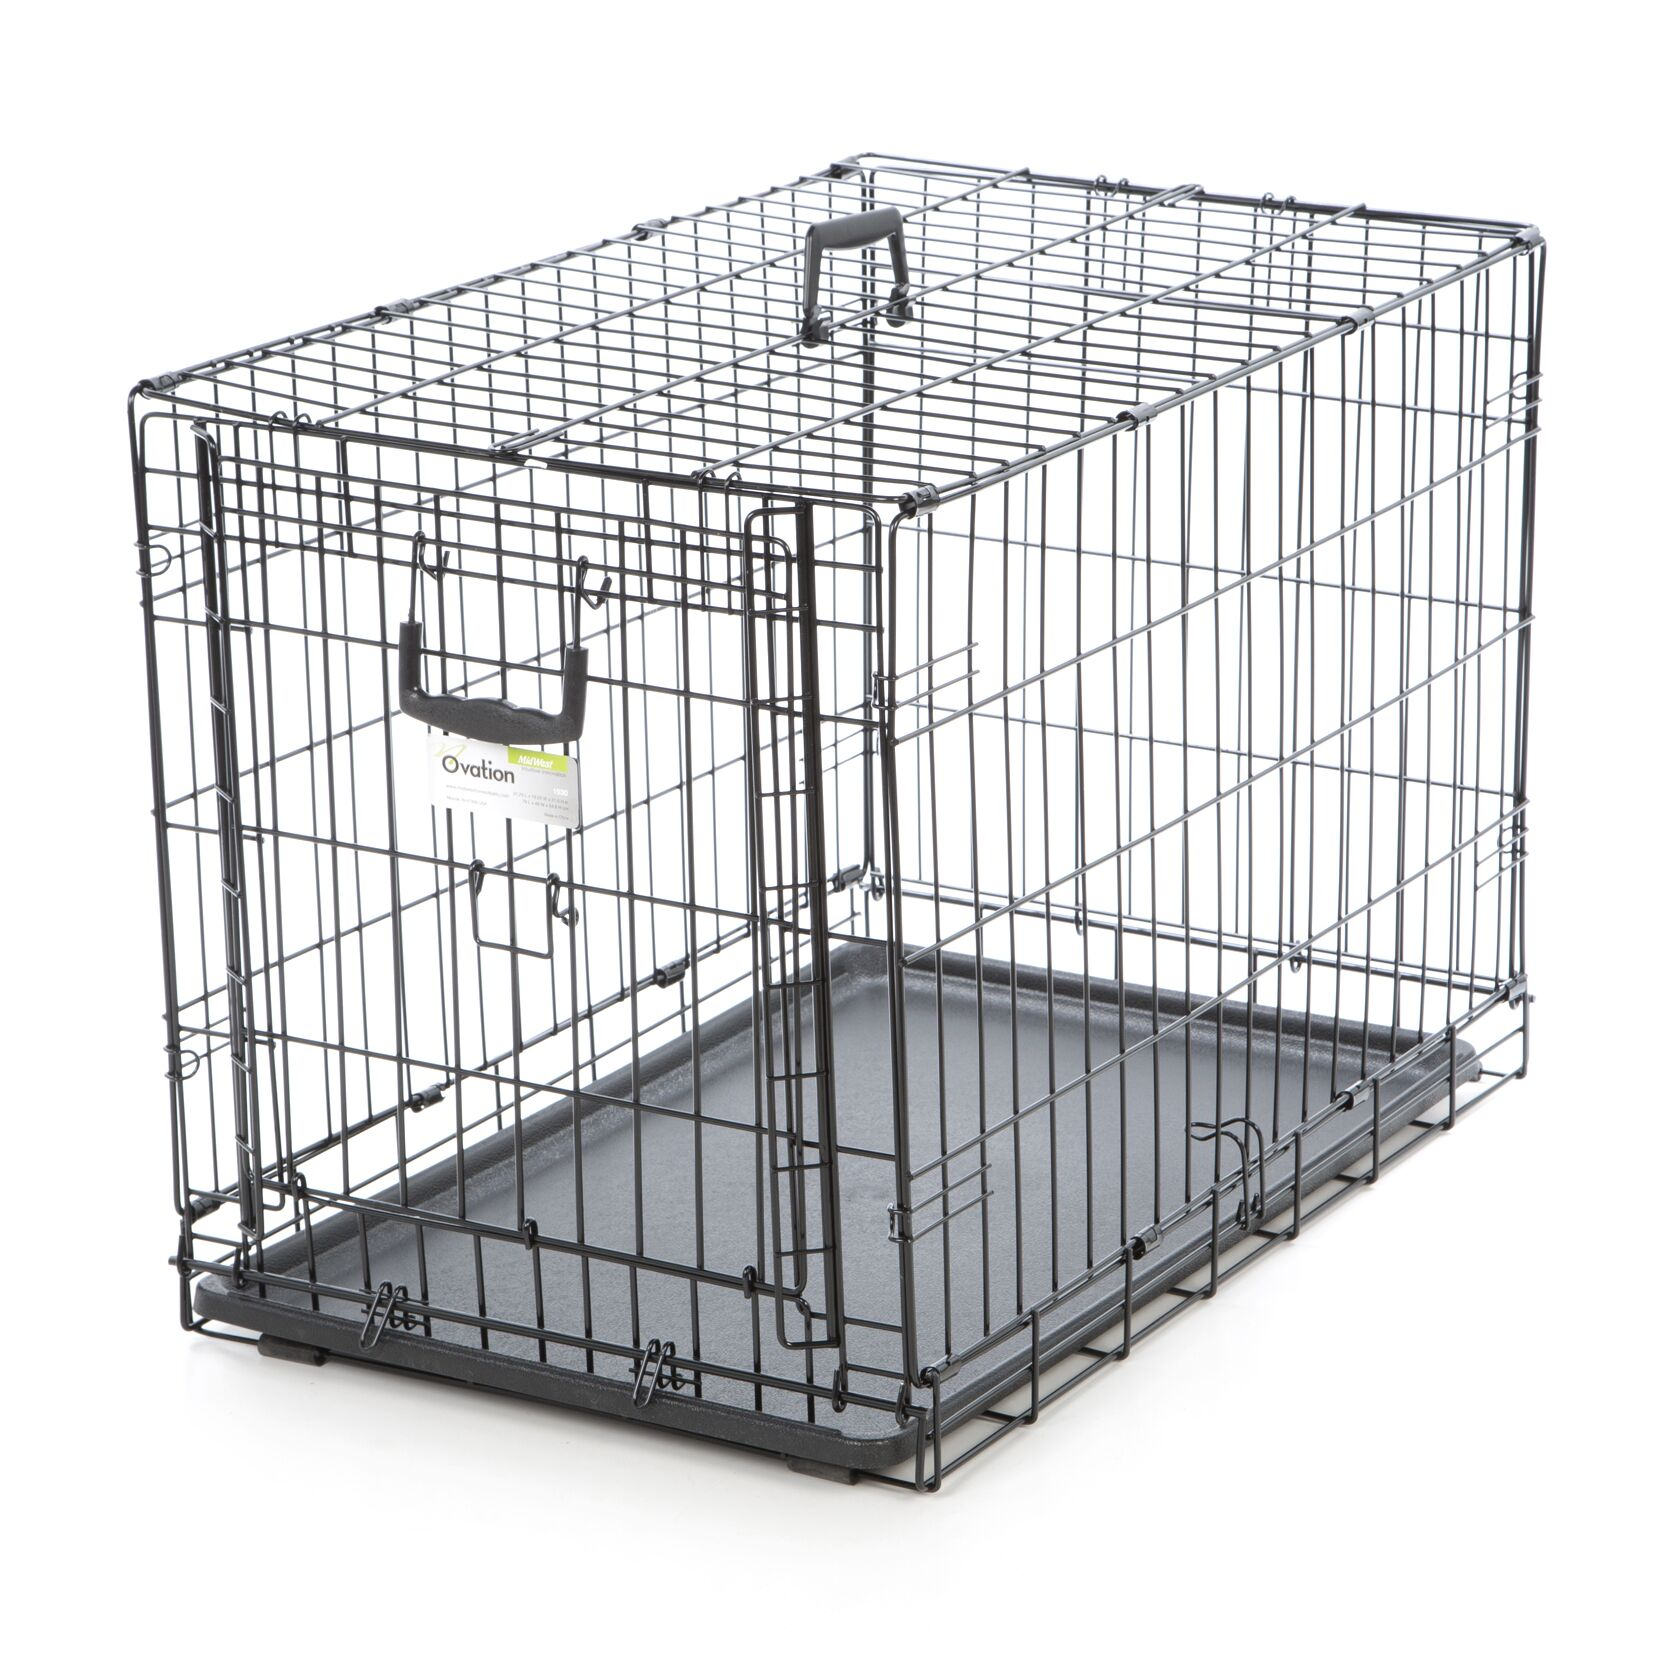 Ovation Single Door Pet Crate Size: 30